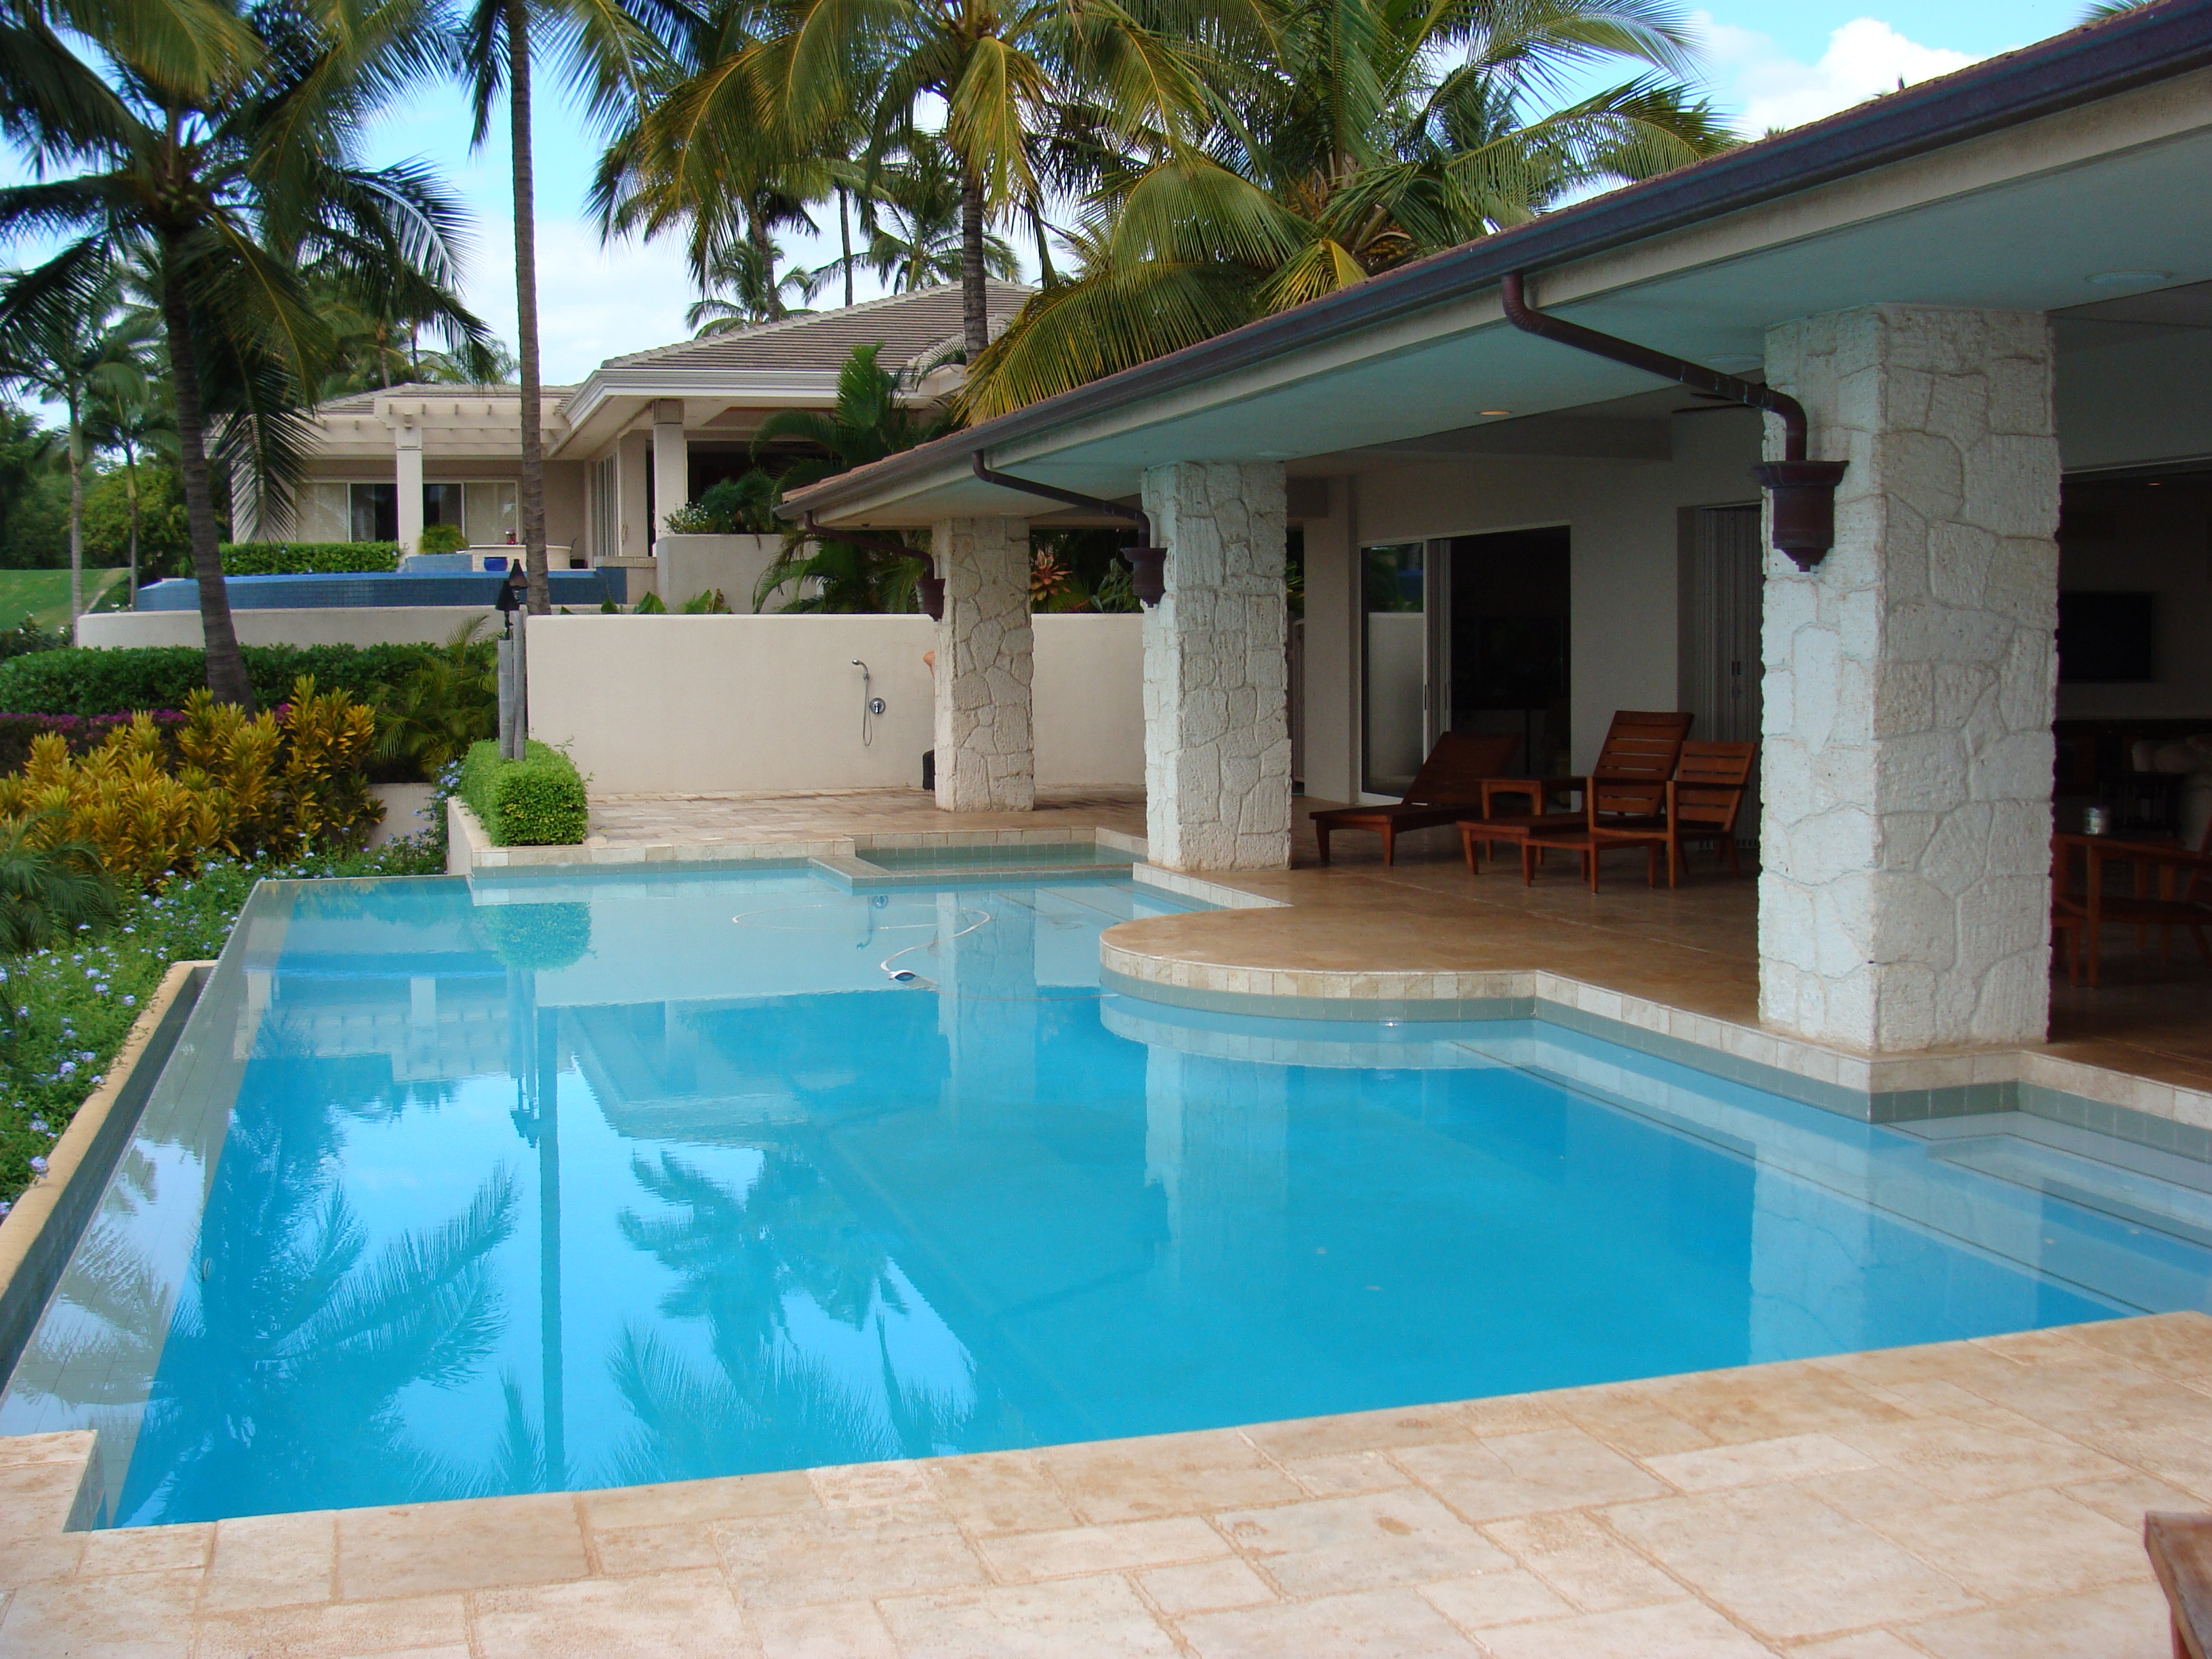 Homes in Wailea Maui